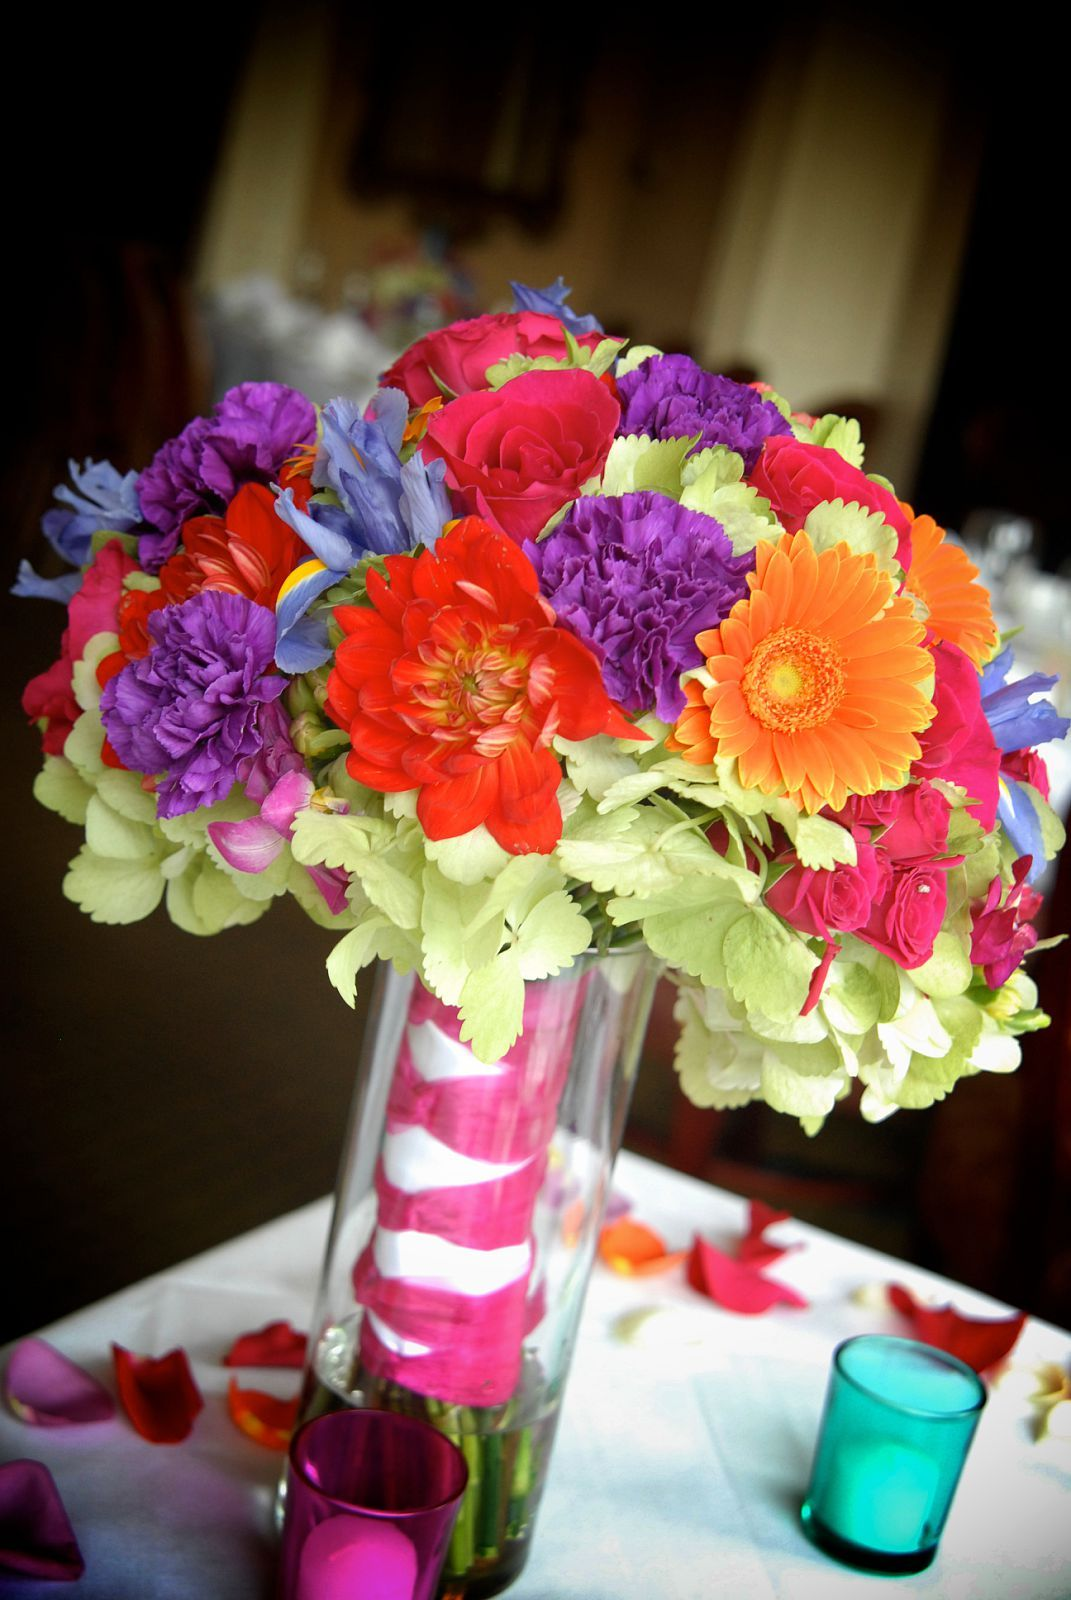 Inspiration, Flowers & Decor, white, orange, pink, red, purple, blue, green, black, silver, Flowers, Board